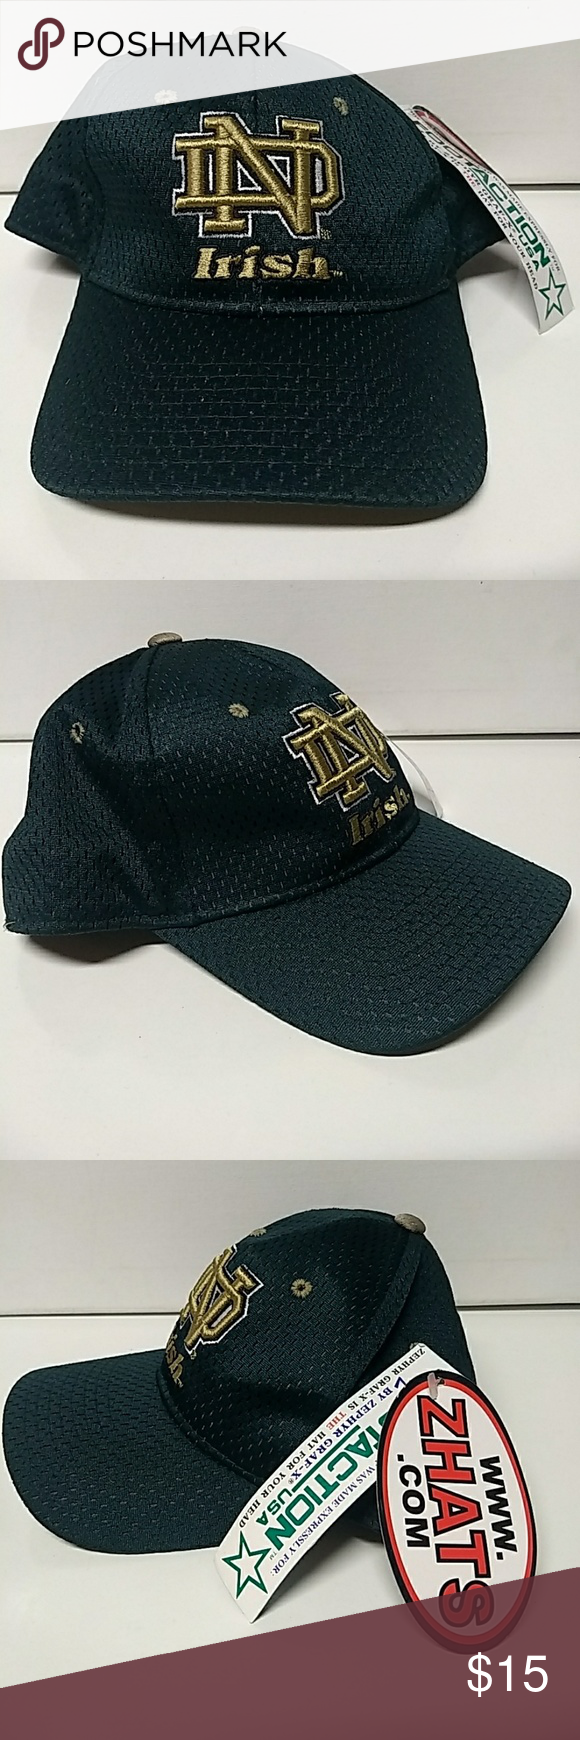 bd3dd185716 Vintage Notre Dame Fighting Irish 7 1 4 Fitted Hat Vintage Notre Dame  Zephyr Hat